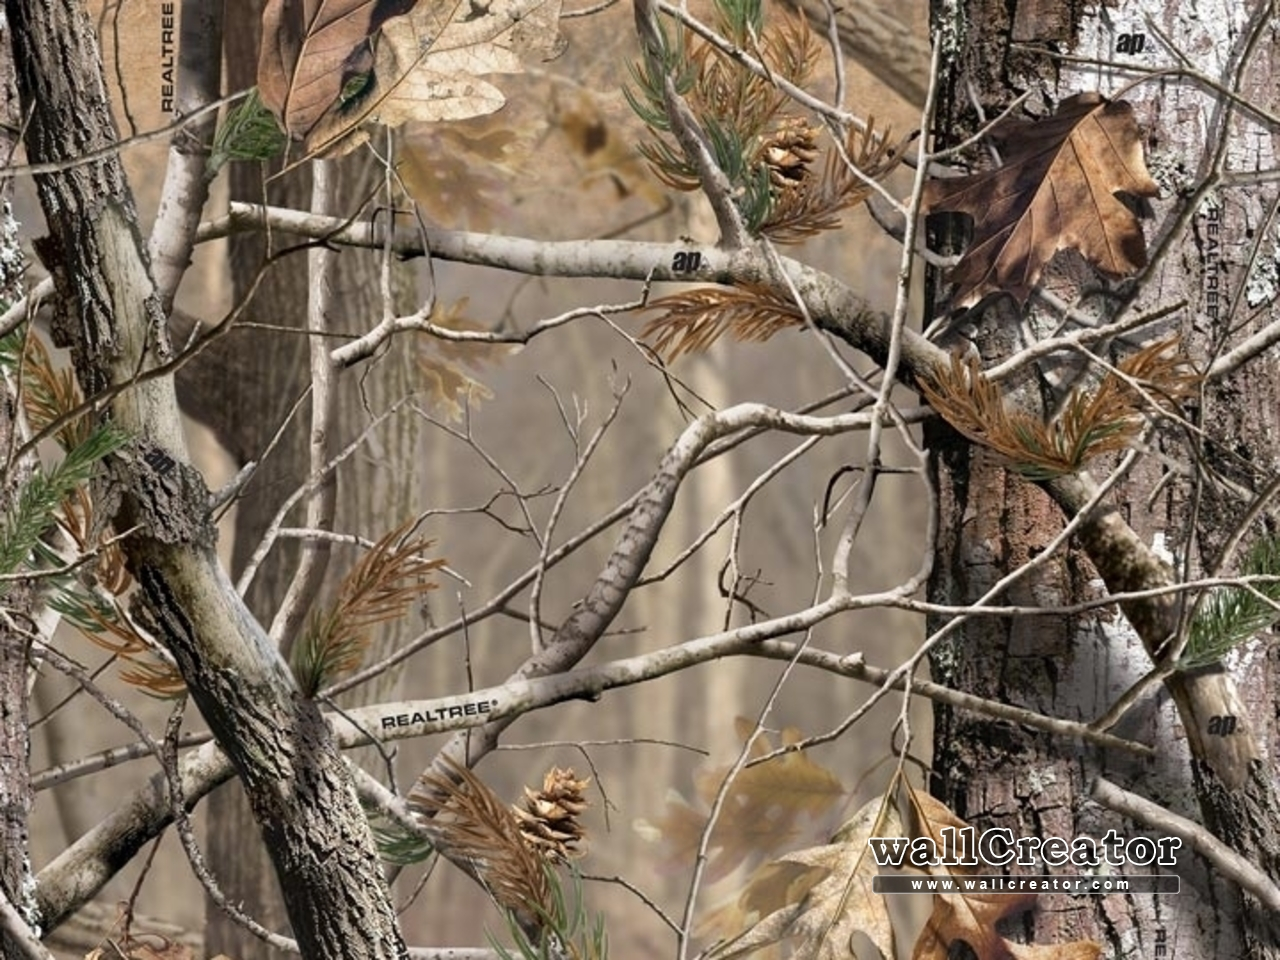 Realtree Computer Wallpaper